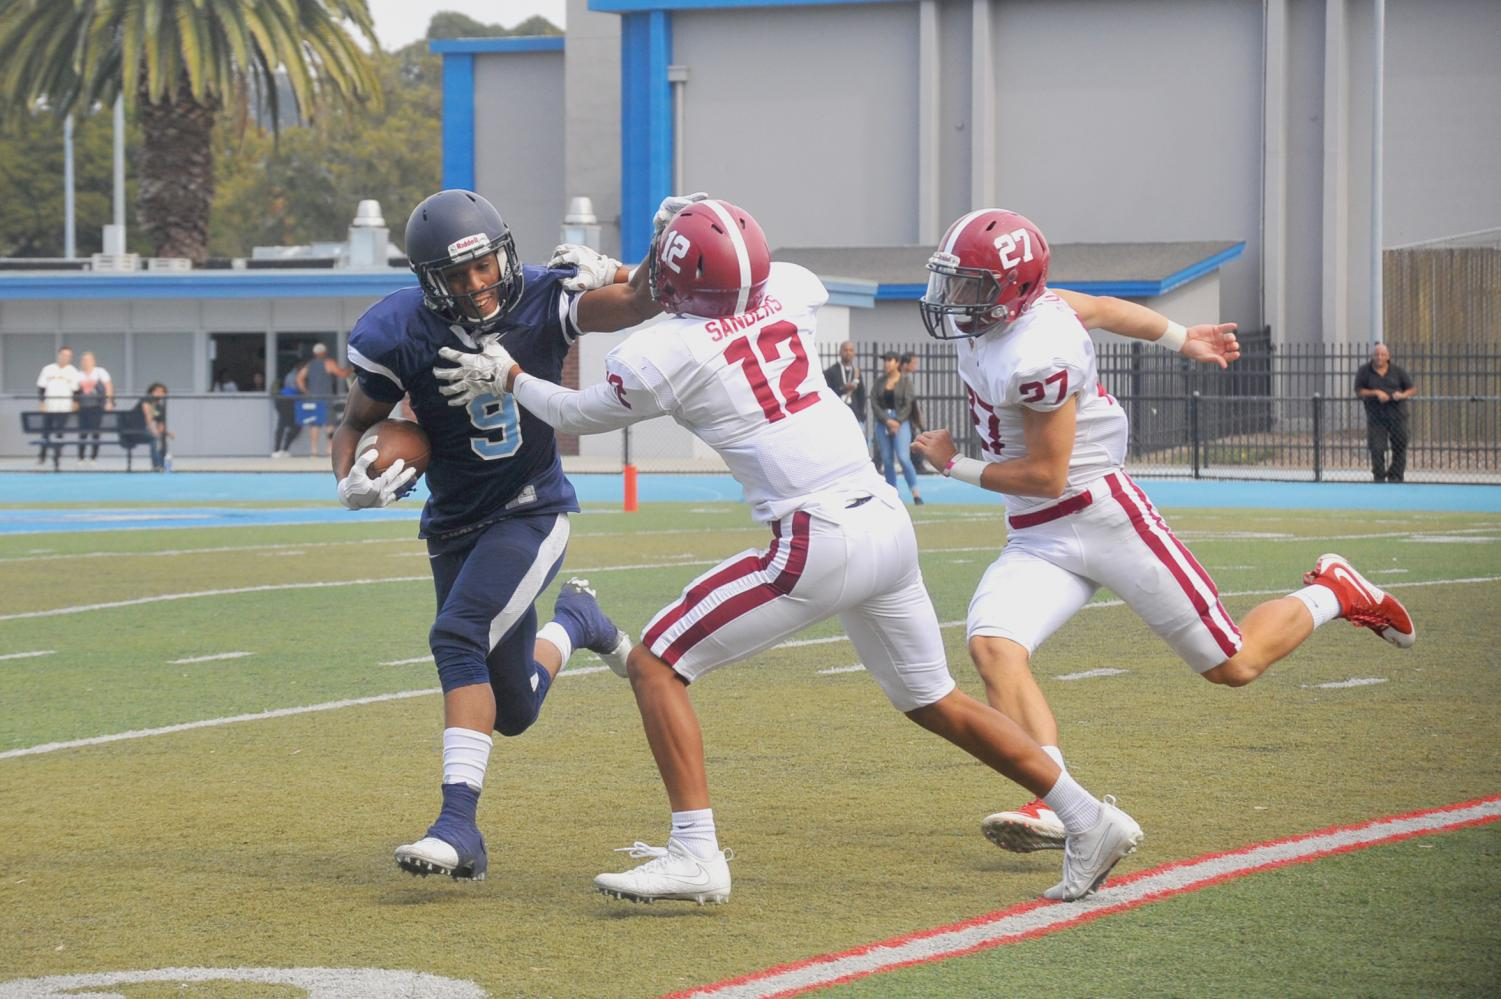 Comet wide receiver Courtney Beane (left) stiff arms Wolverine defensive back Dominick Sanders (middle) during  Sierra College's 56-28 win against Contra Costa College on Sept. 9 at Comet Stadium.